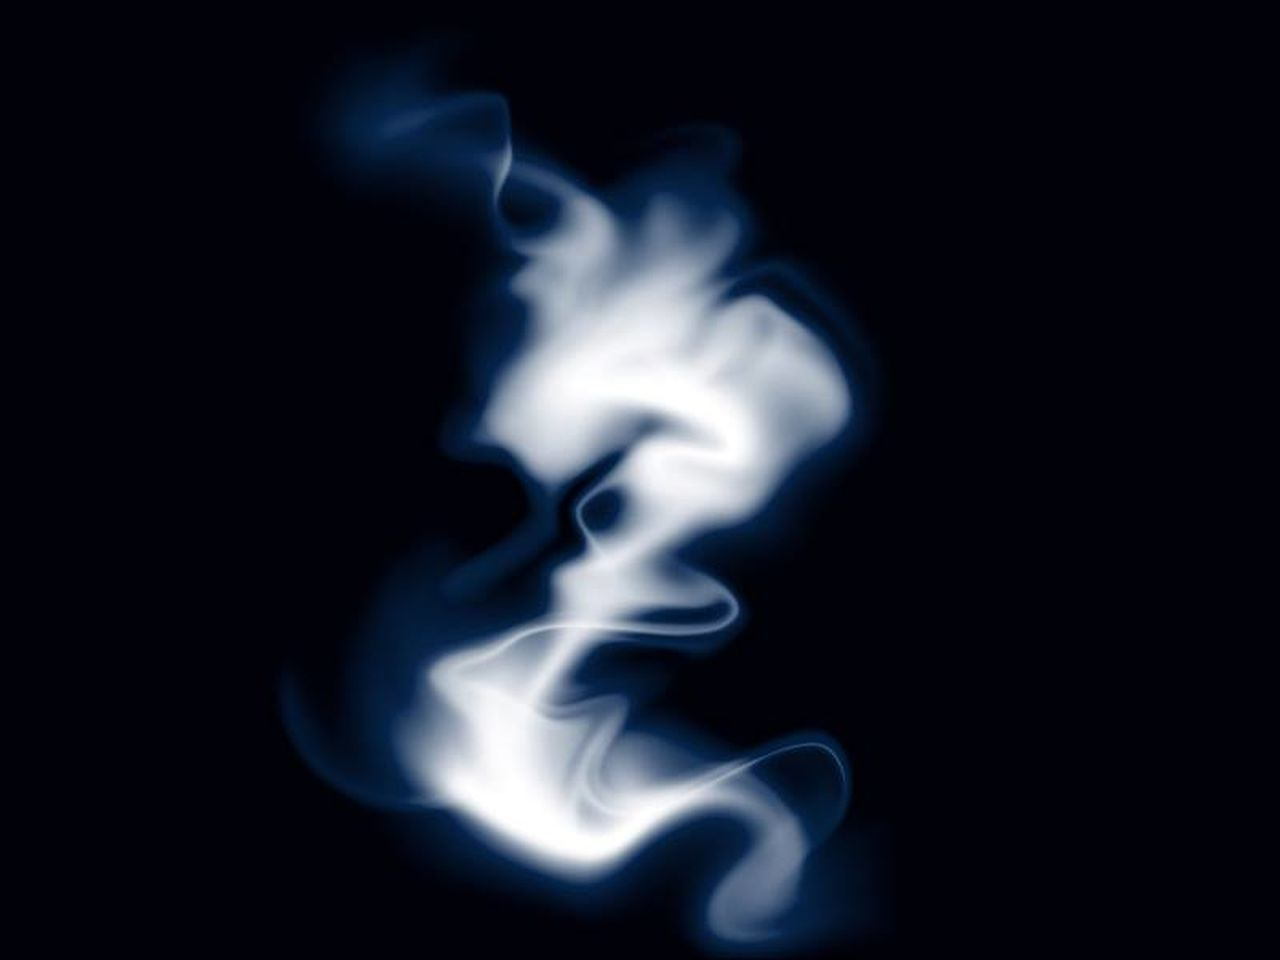 smoke - physical structure, burning, blue, no people, heat - temperature, swirl, black background, flame, motion, close-up